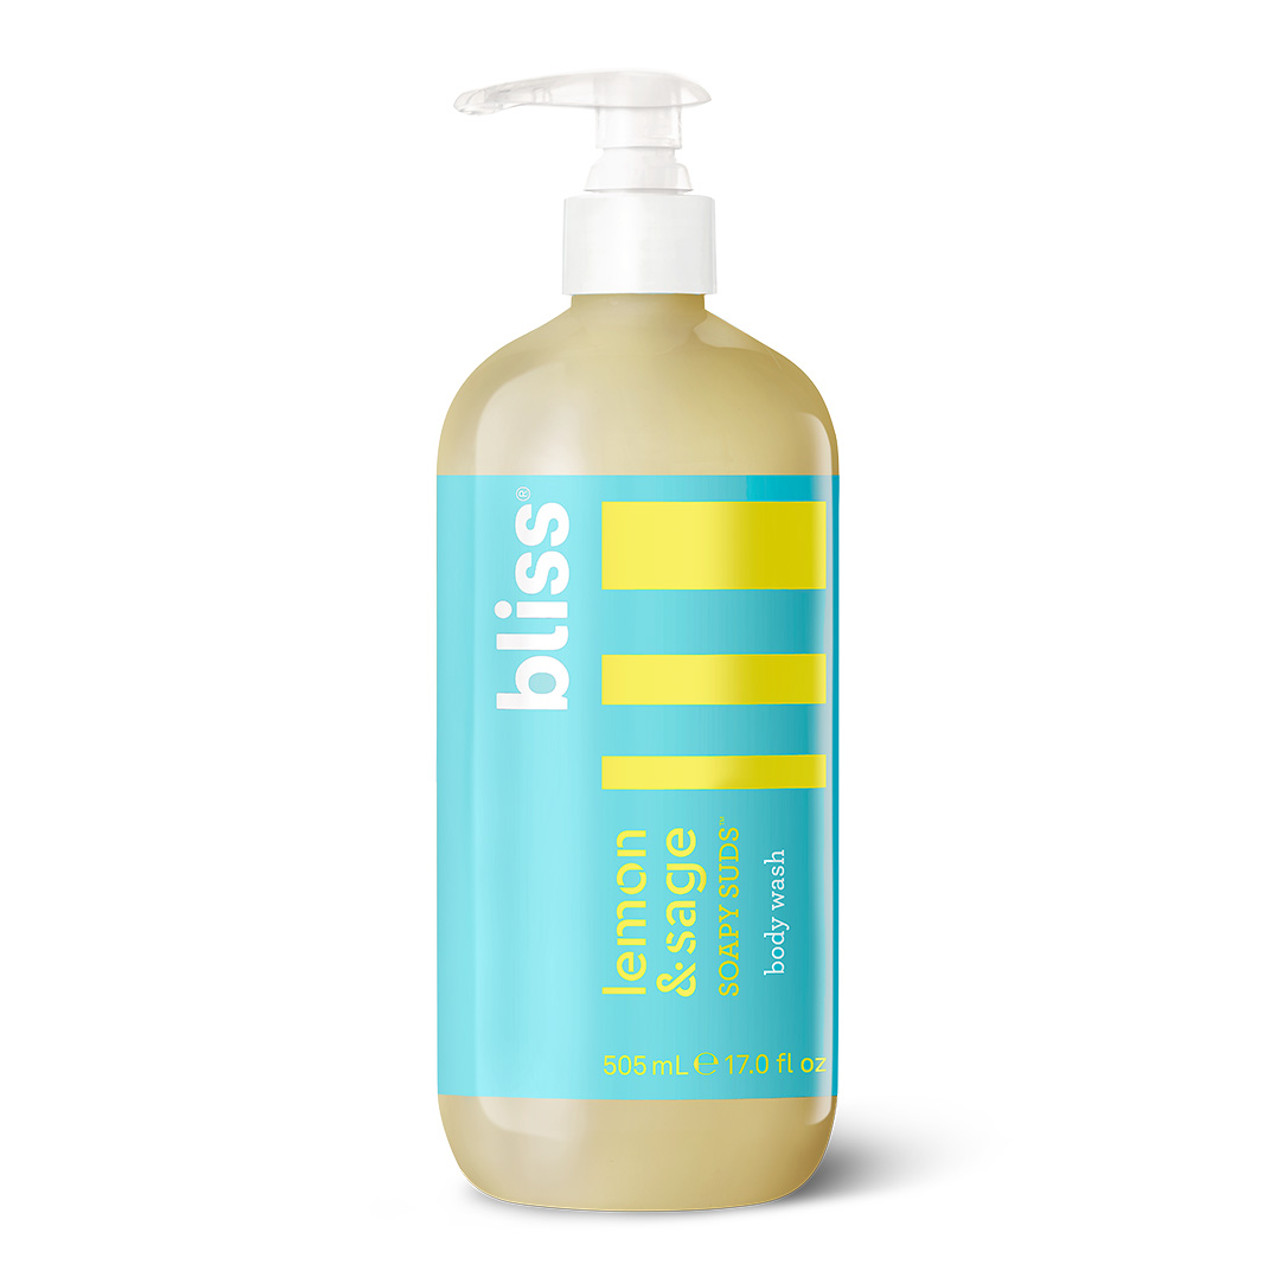 Lemon & Sage Soapy Suds Foaming Body Wash | Bliss